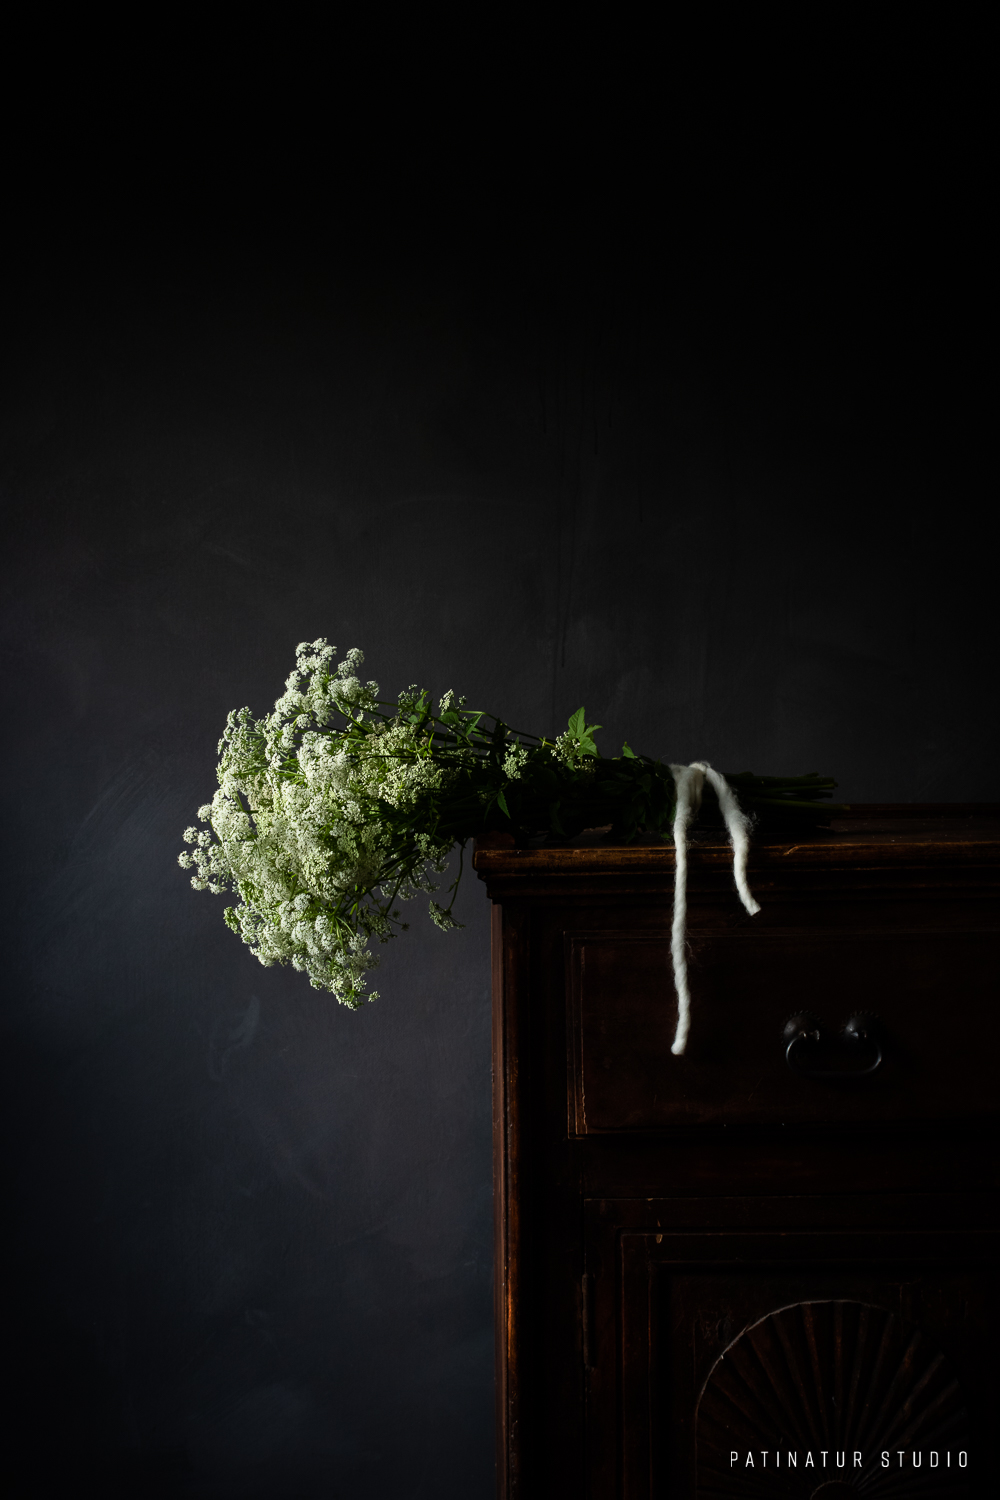 Photo Art | Dark and moody floral still life with bouquet of ground elder